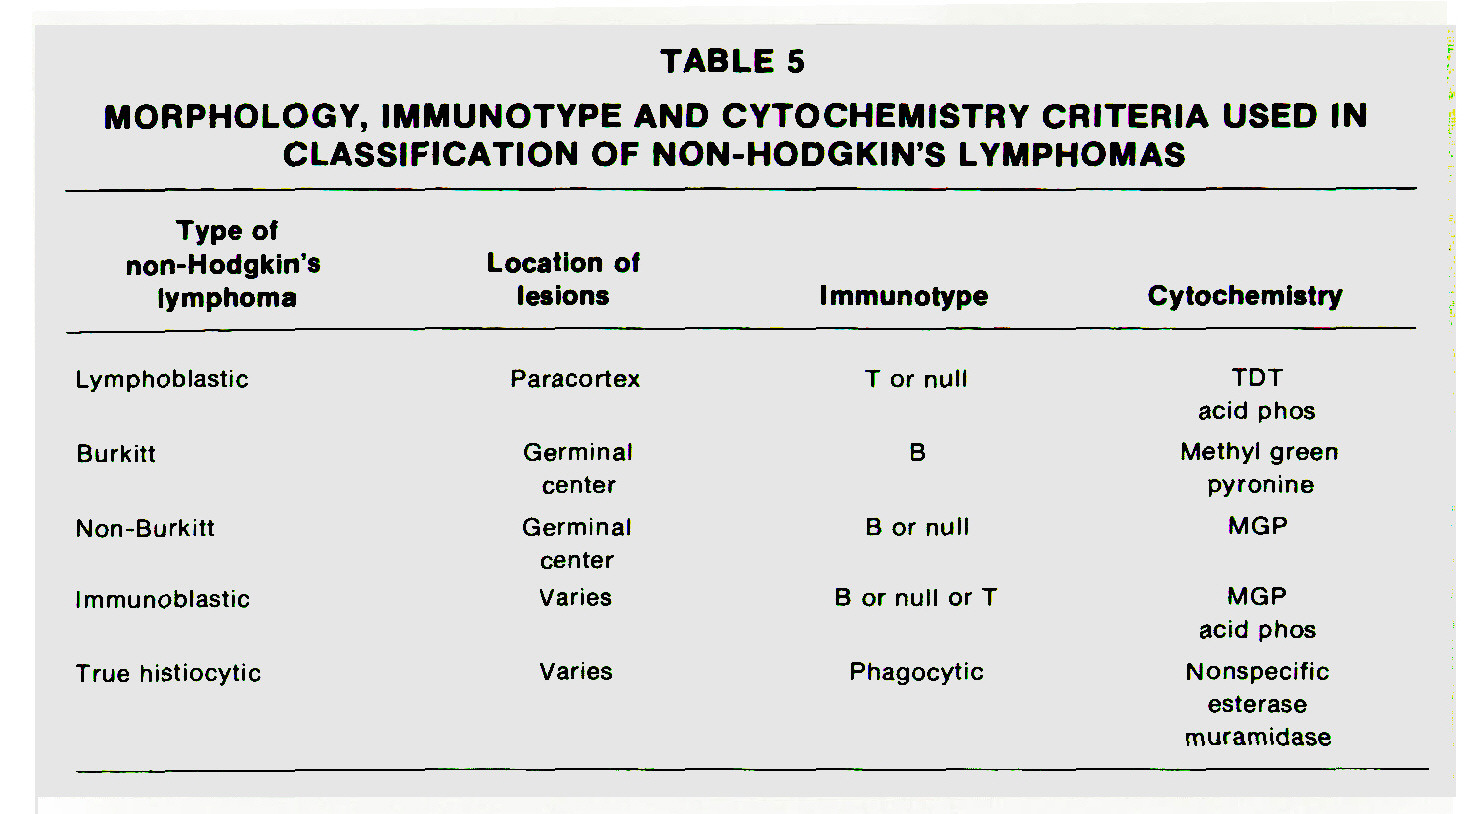 TABLE 5MORPHOLOGY, IMMUNOTYPE AND CYTOCHEMISTRY CRITERIA USED IN CLASSIFICATION OF NON-HODGKIN'S LYMPHOMAS